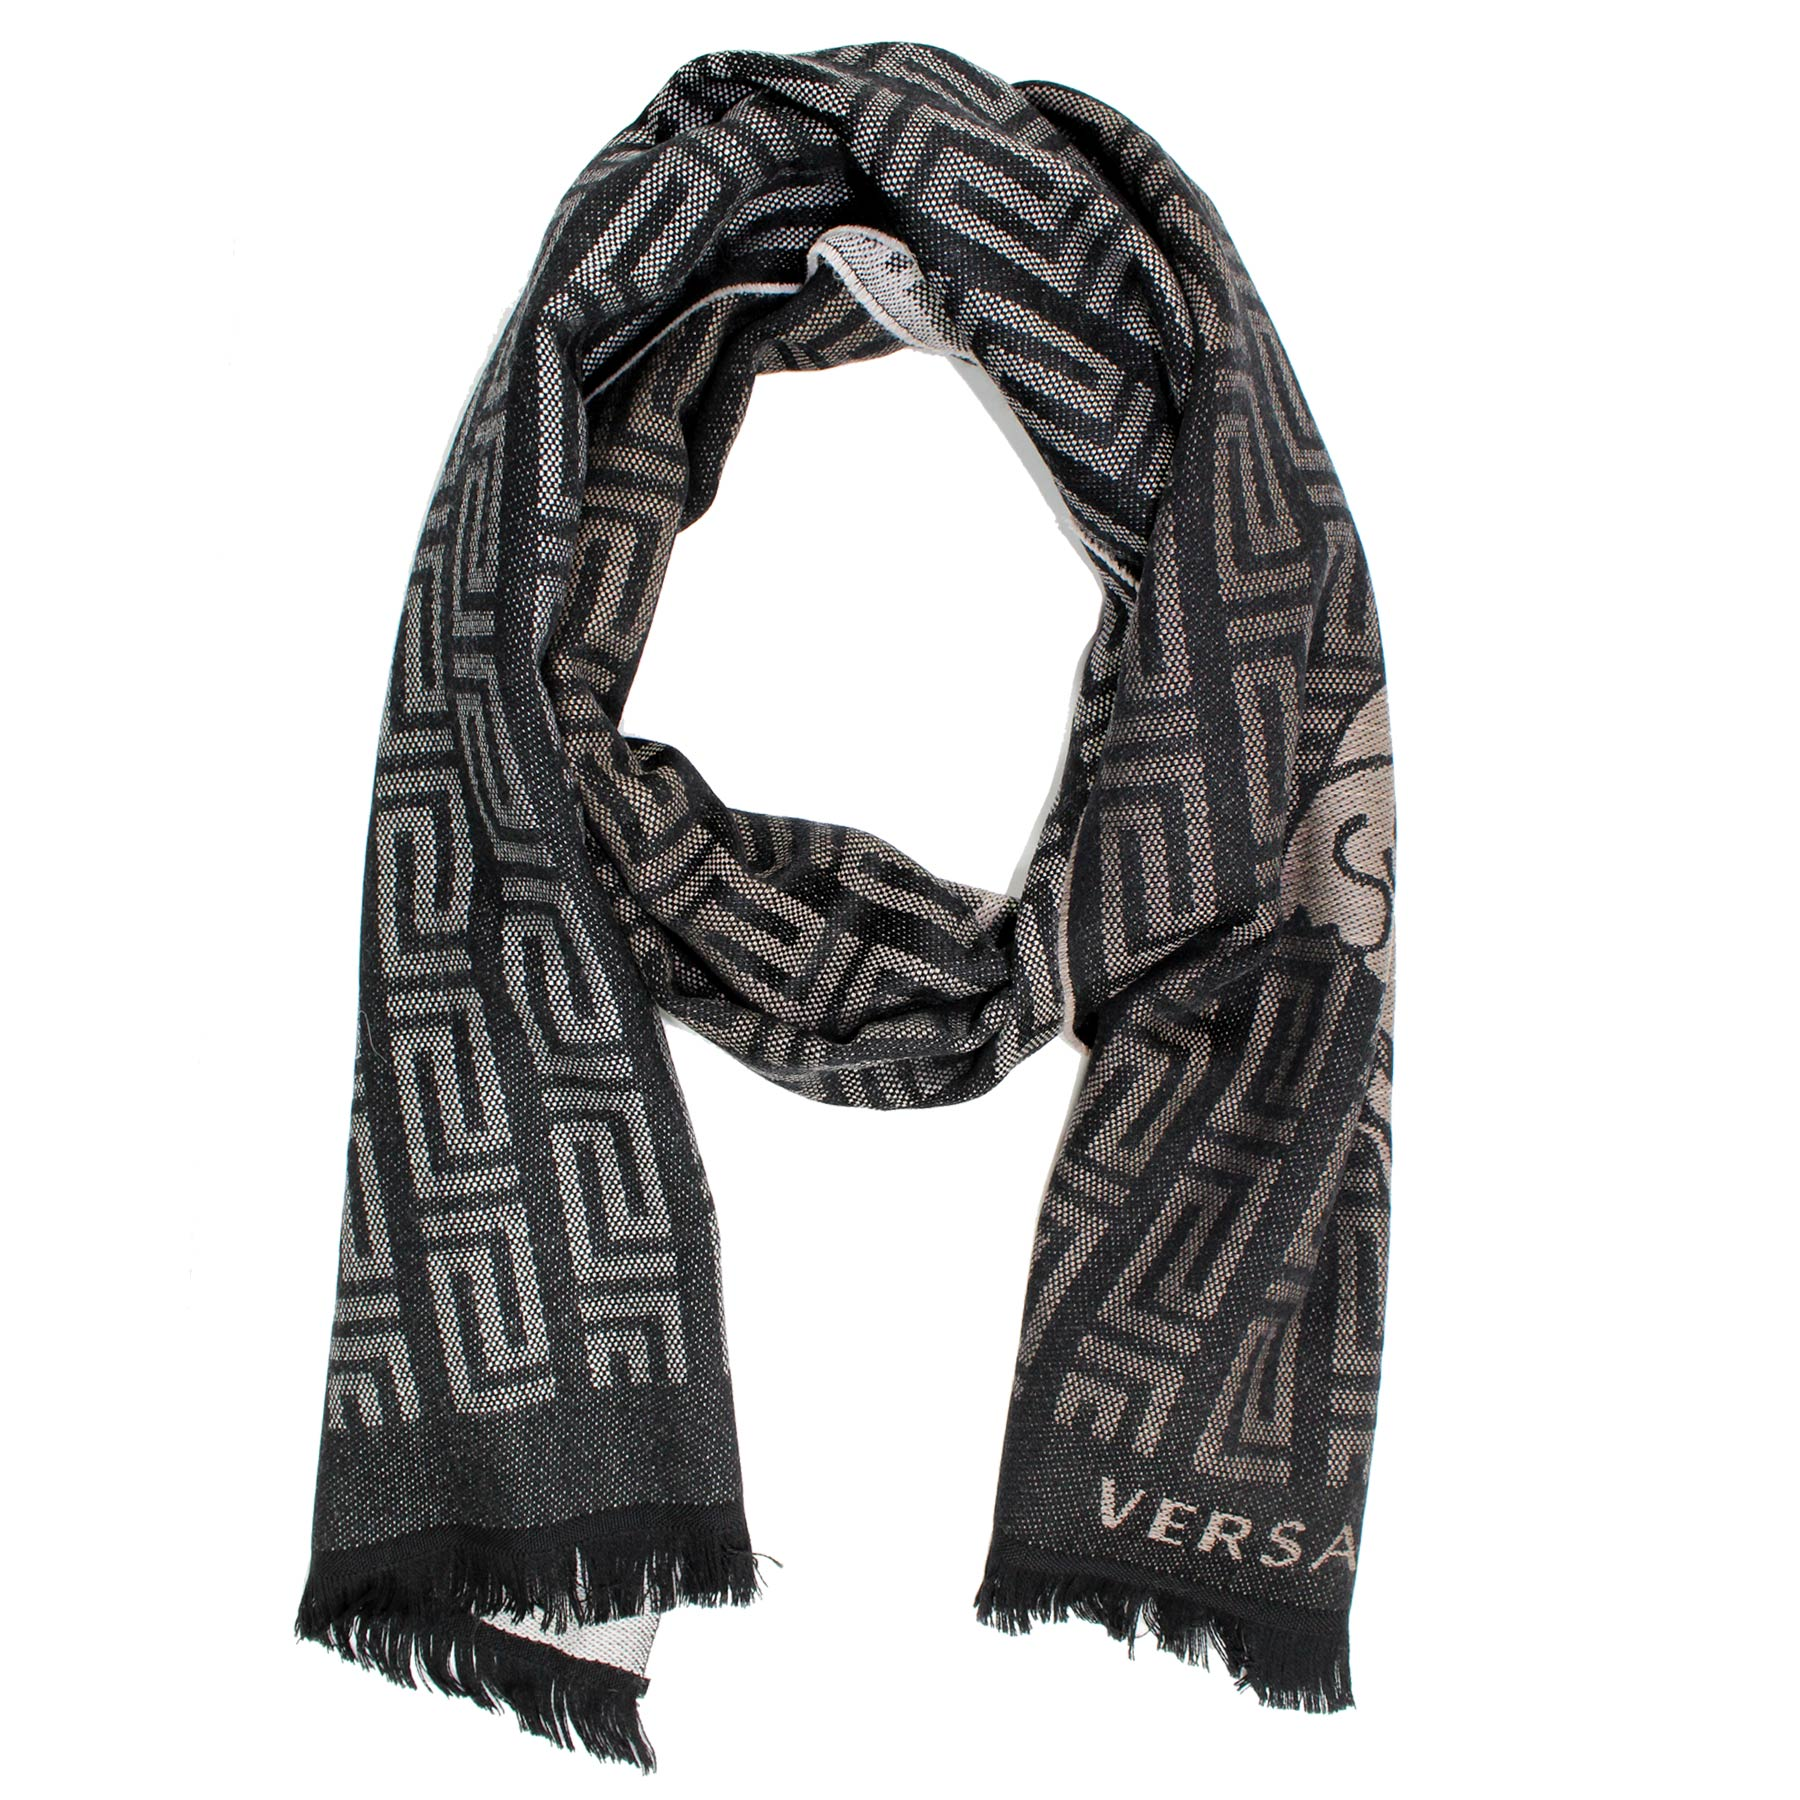 1cab5d0e2c Versace Scarf Black Gray Greek Knit & Medusa - Wool Shawl Made In Italy SALE